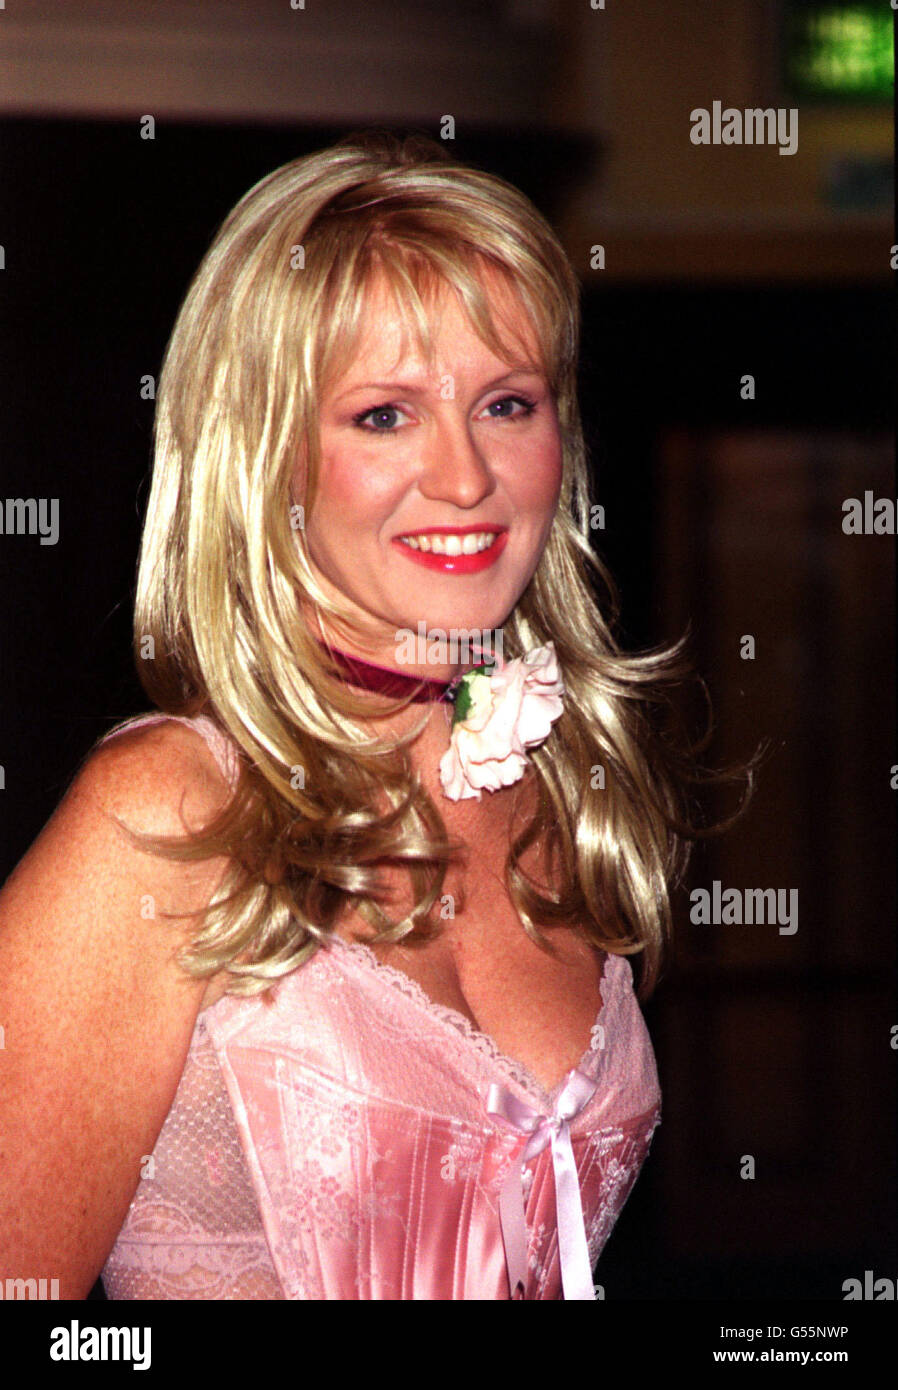 esther mcvey - photo #12